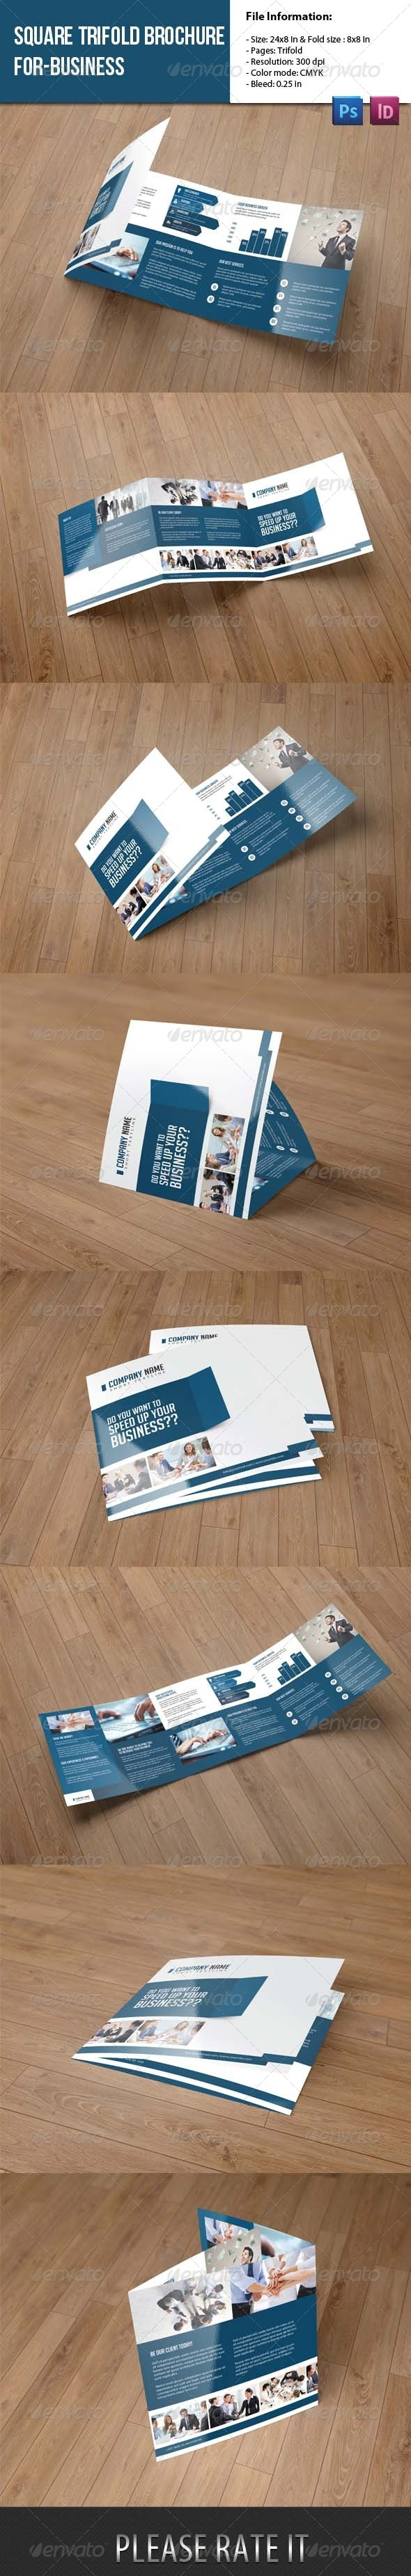 GraphicRiver Square Trifold Brochure for Business 8177937